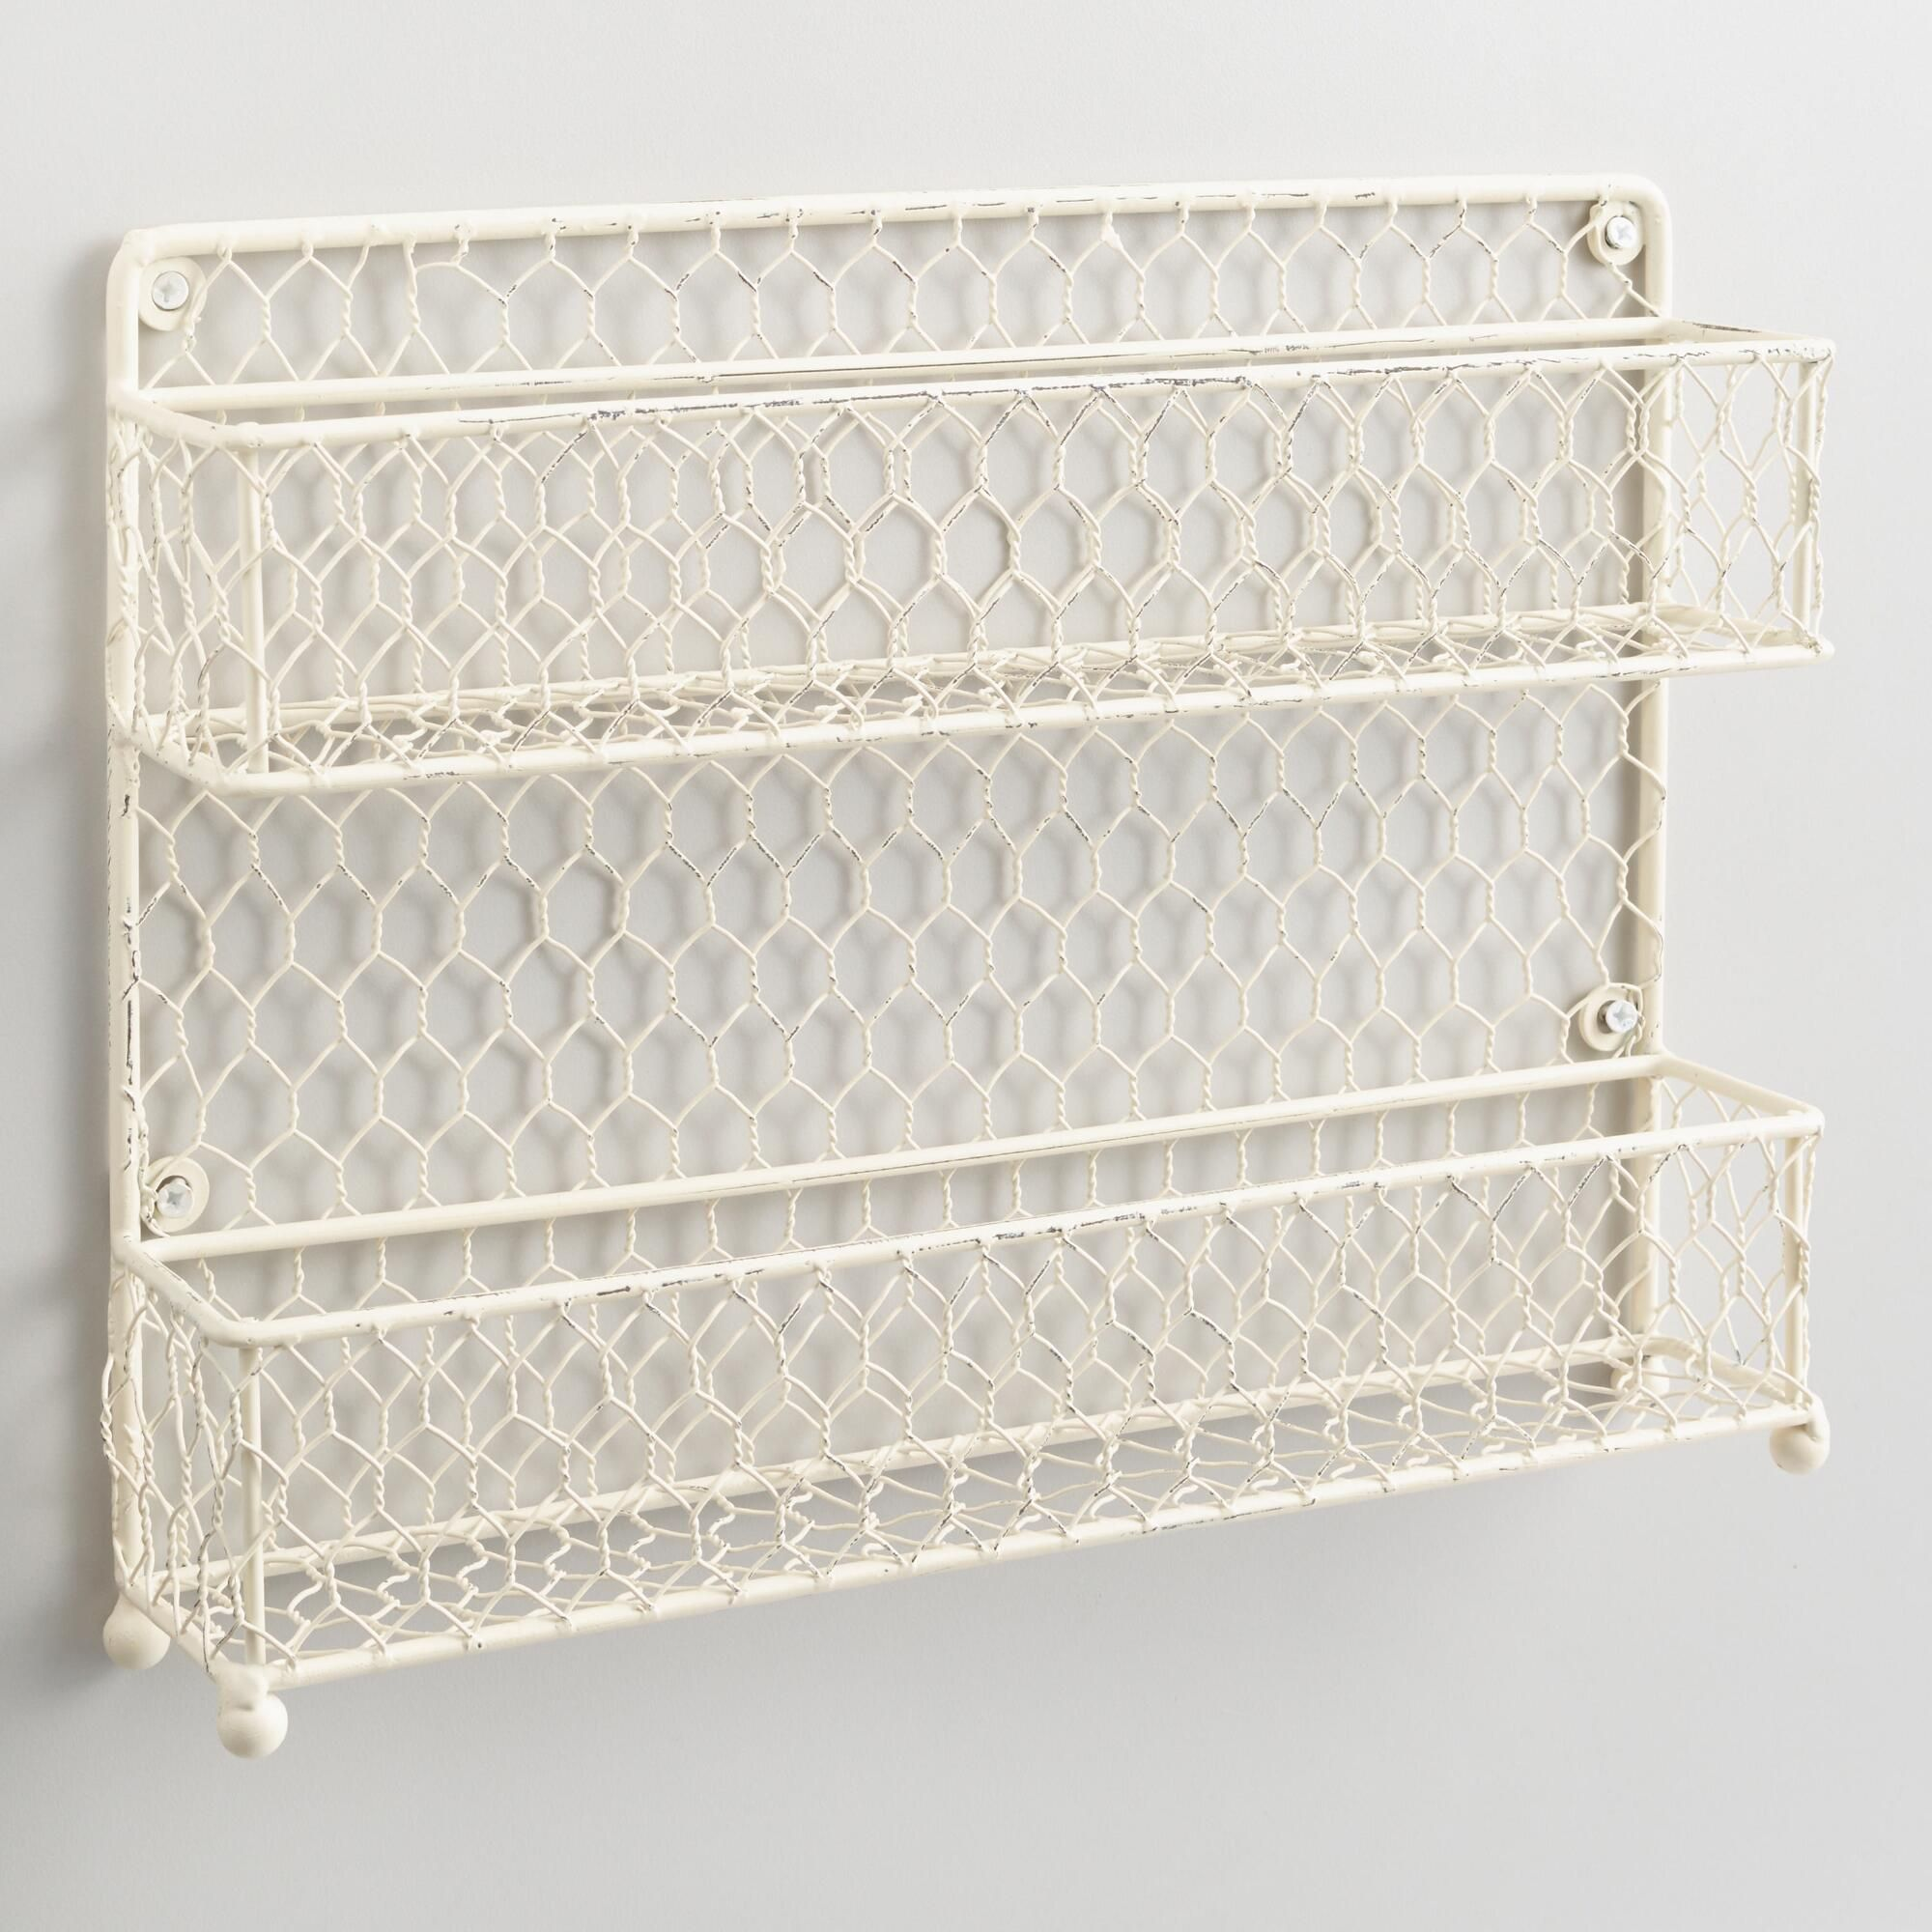 Made of vintage-style chicken wire with an antique white finish, our ...